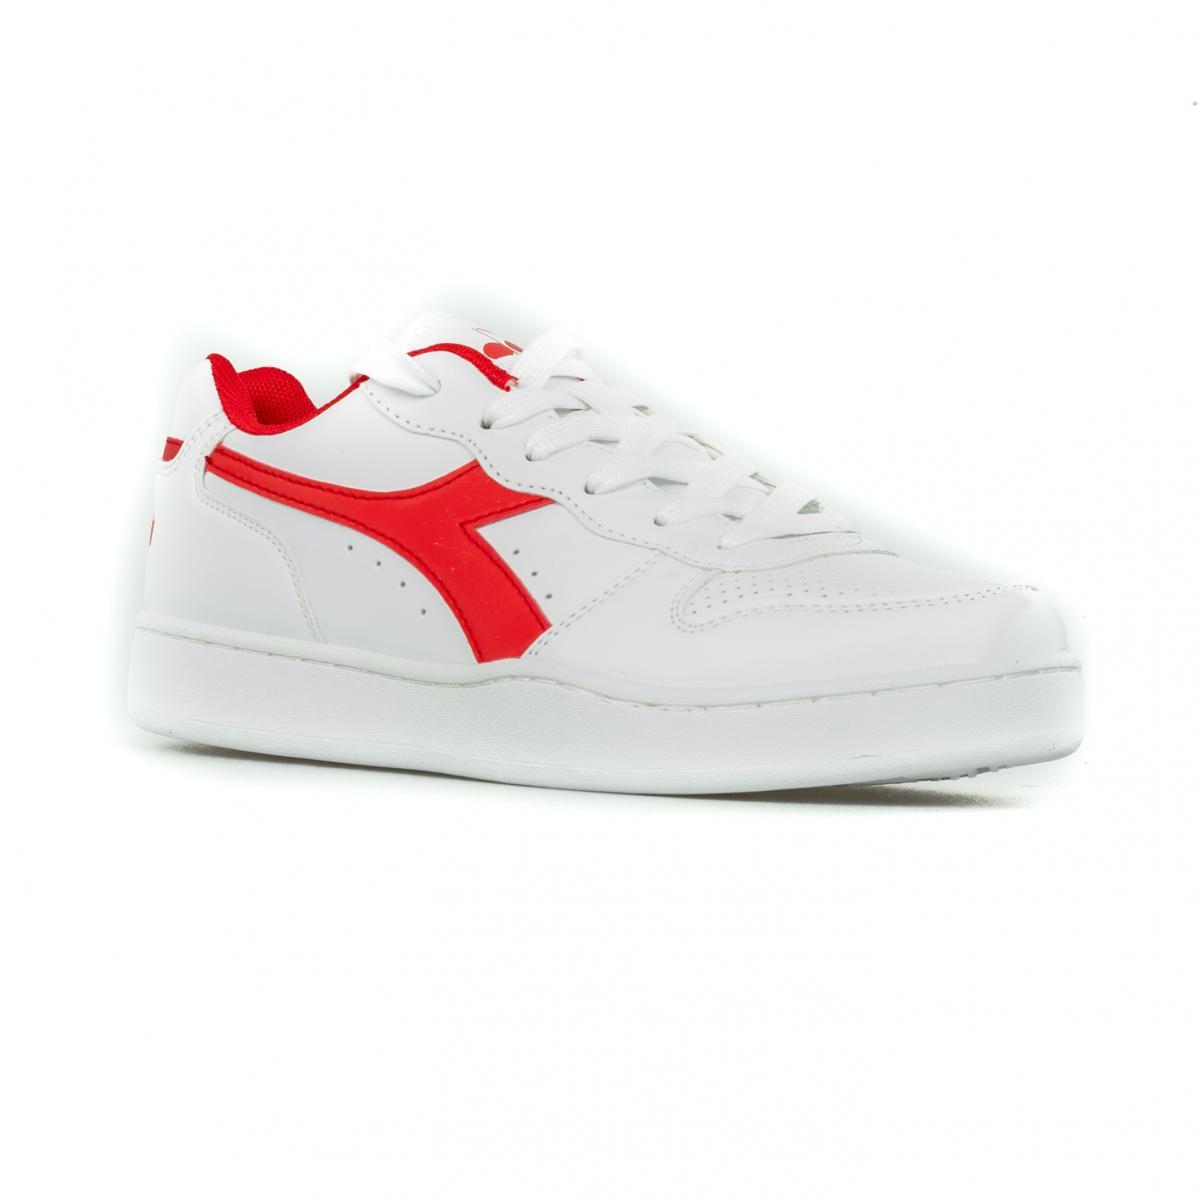 SCARPA UOMO DIADORA PLAYGROUND OX 101.172319 01 45033 WHITE/RED